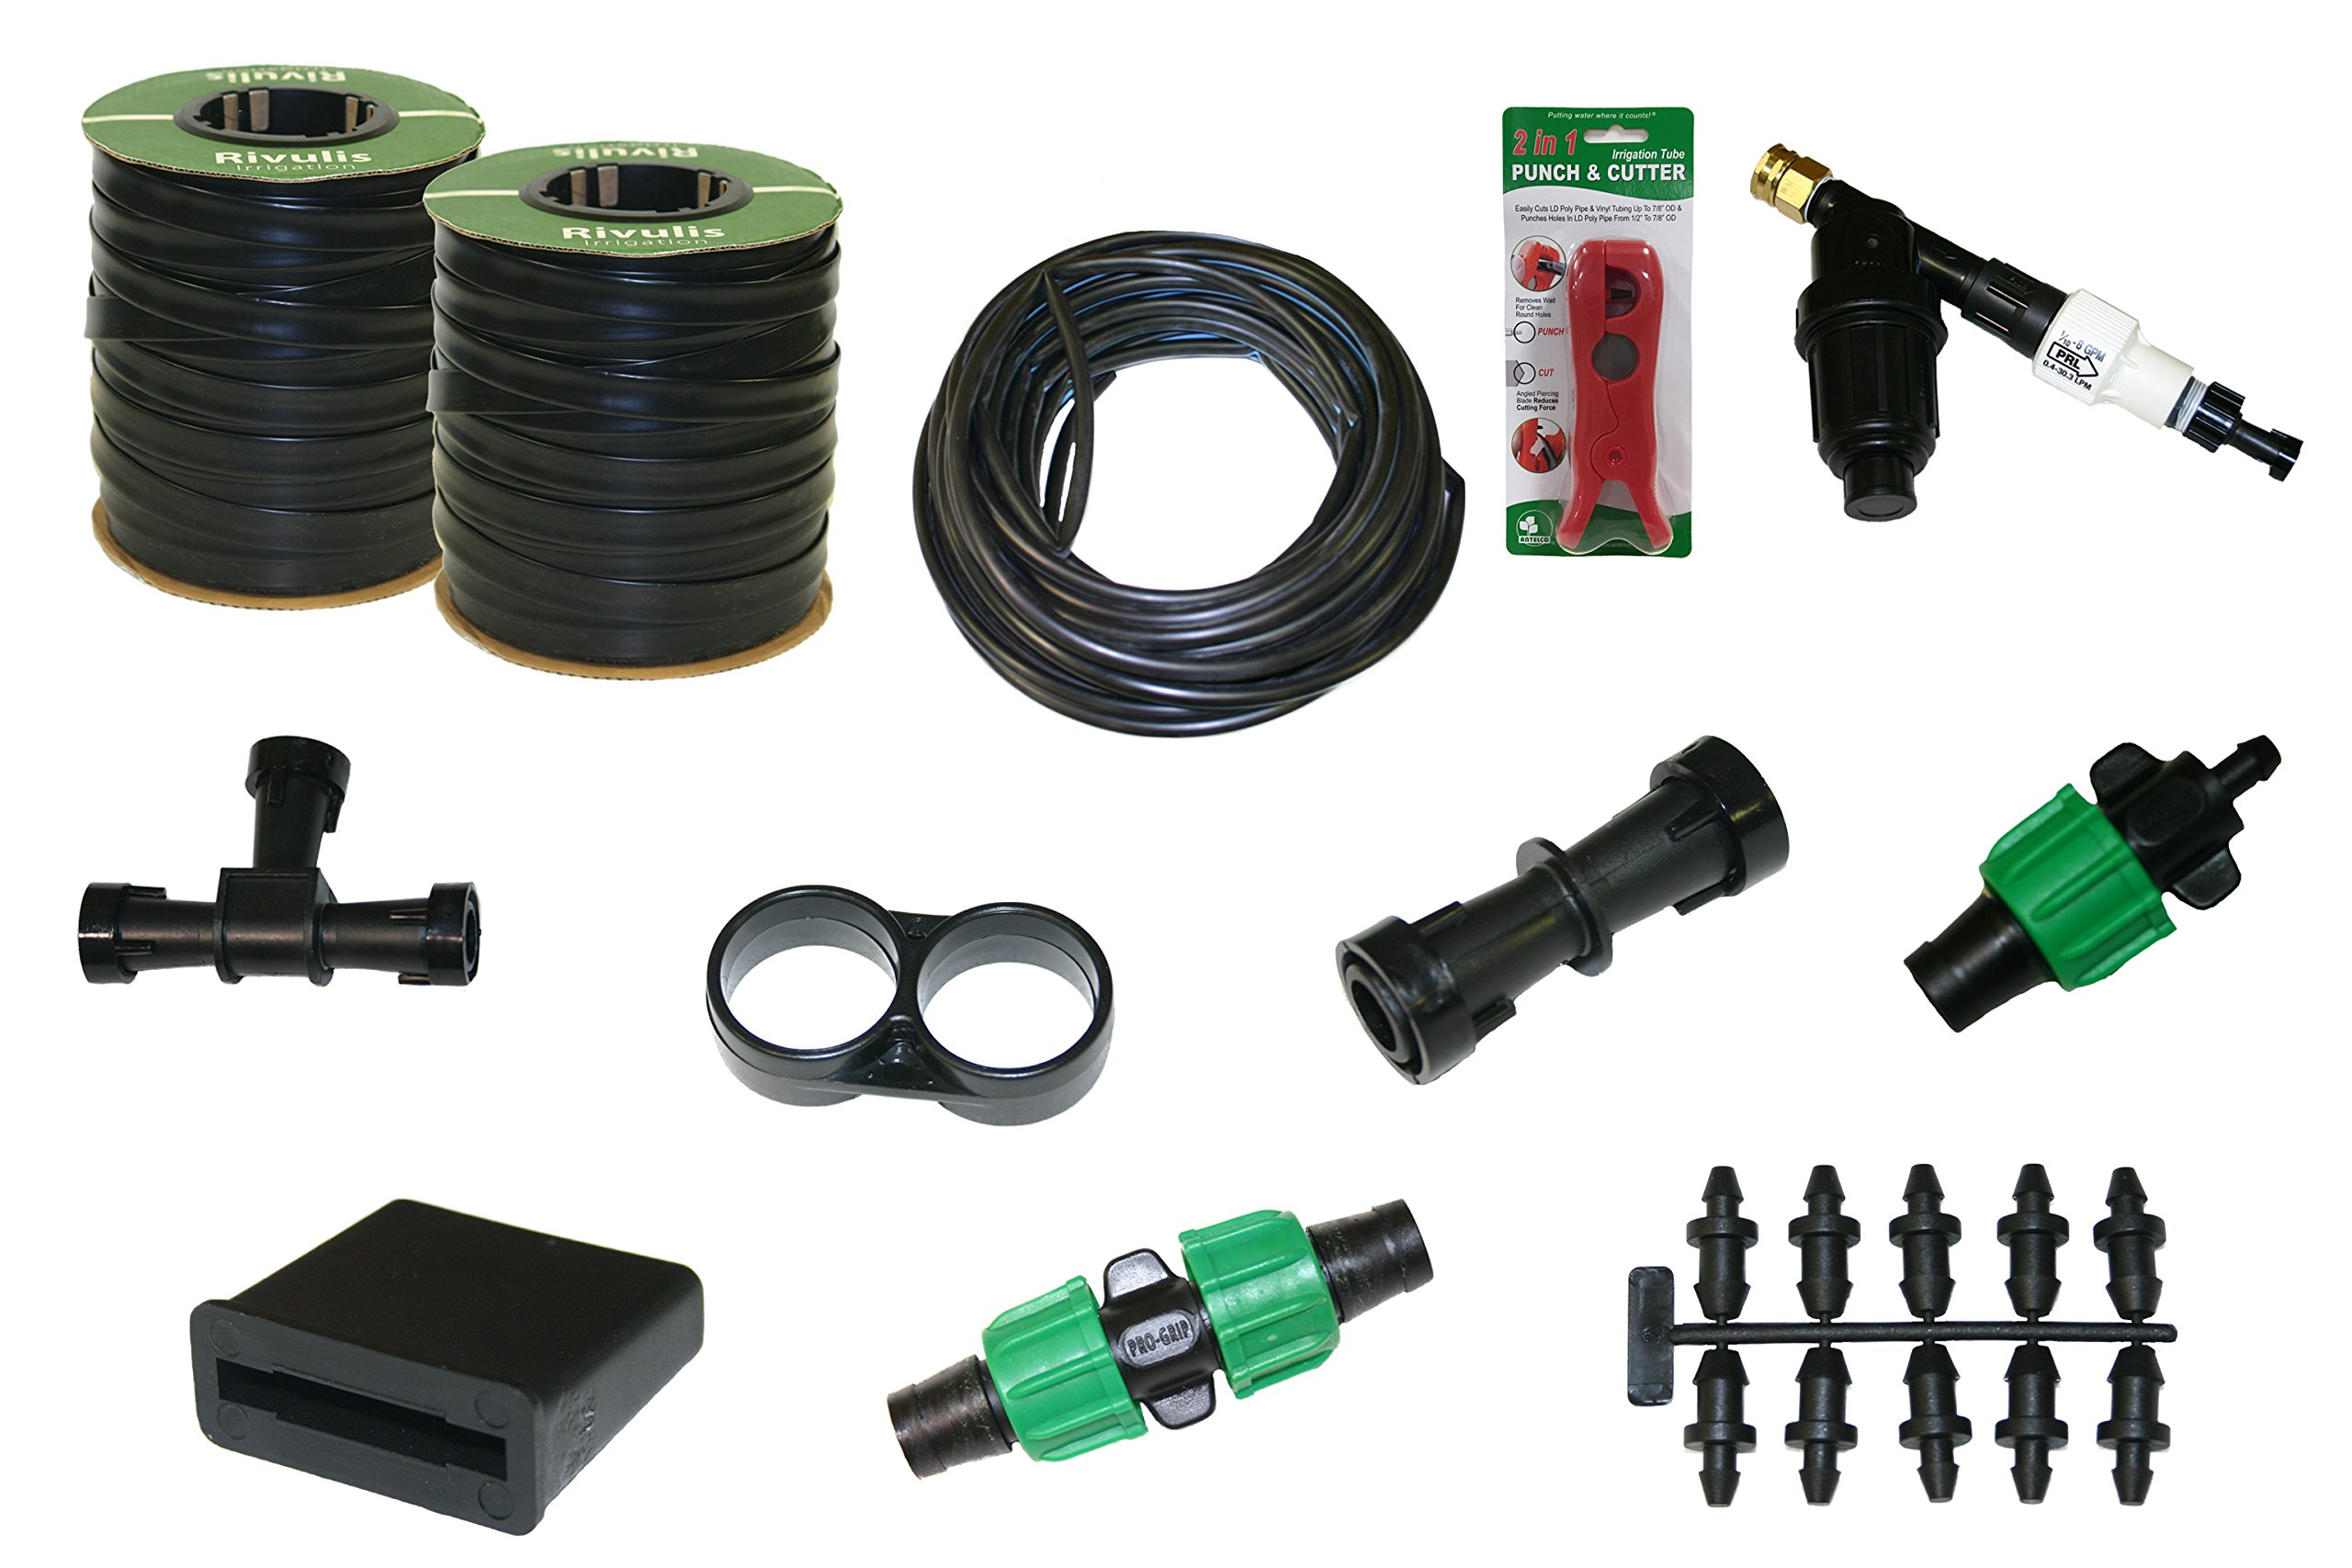 Drip Tape (15 mil) Irrigation Kit for Vegetable Gardens | Two 750 ft. Rolls | Fittings for 20 Rows